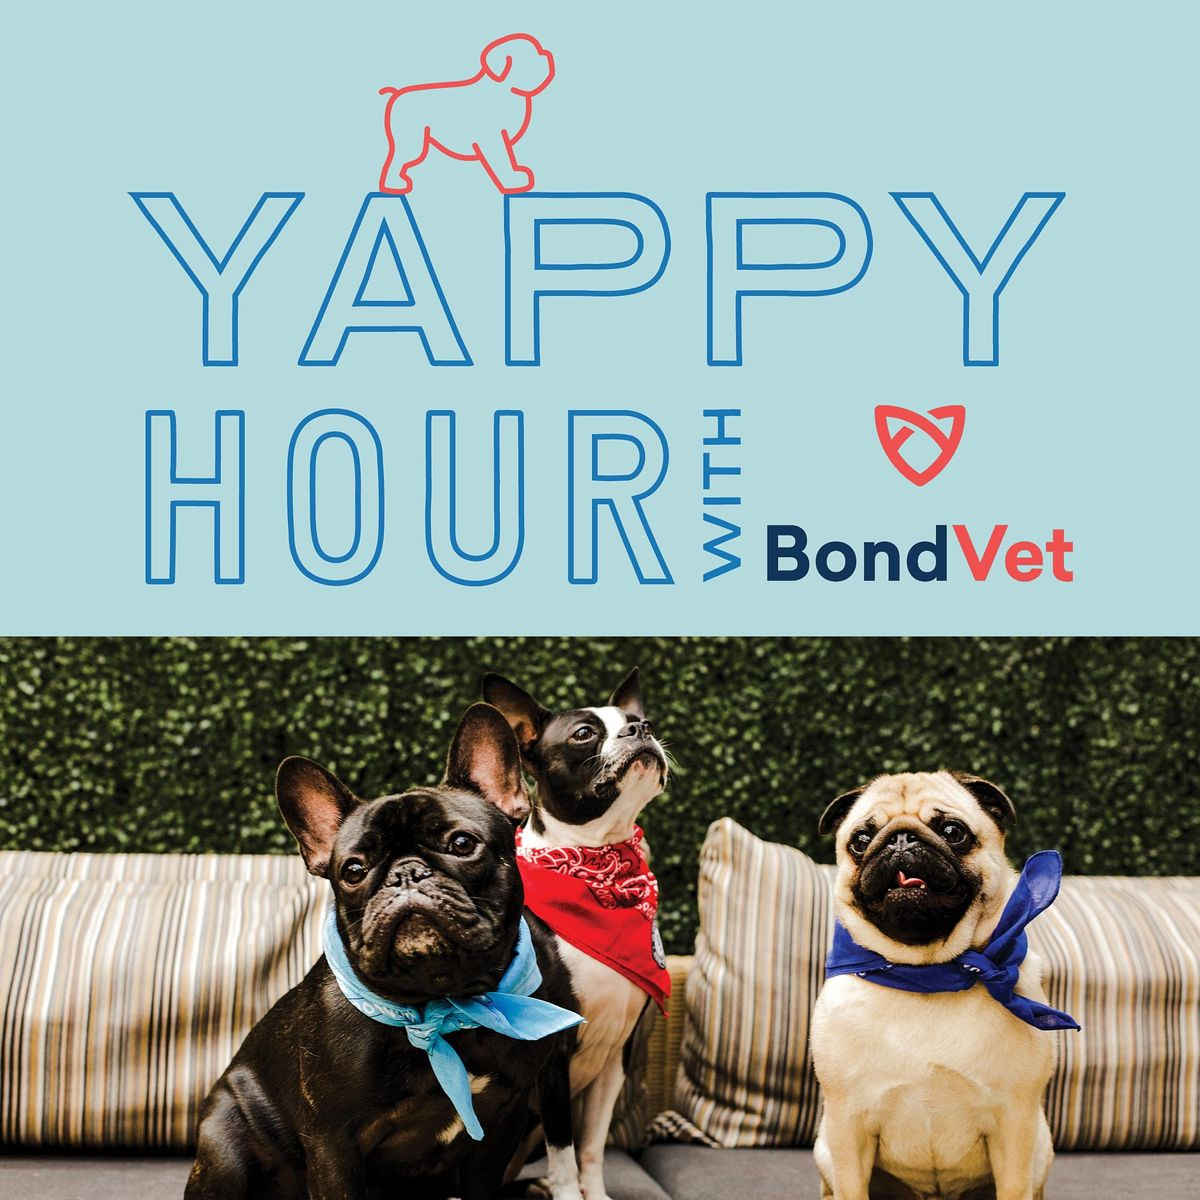 Yappy Hour at The Wilson